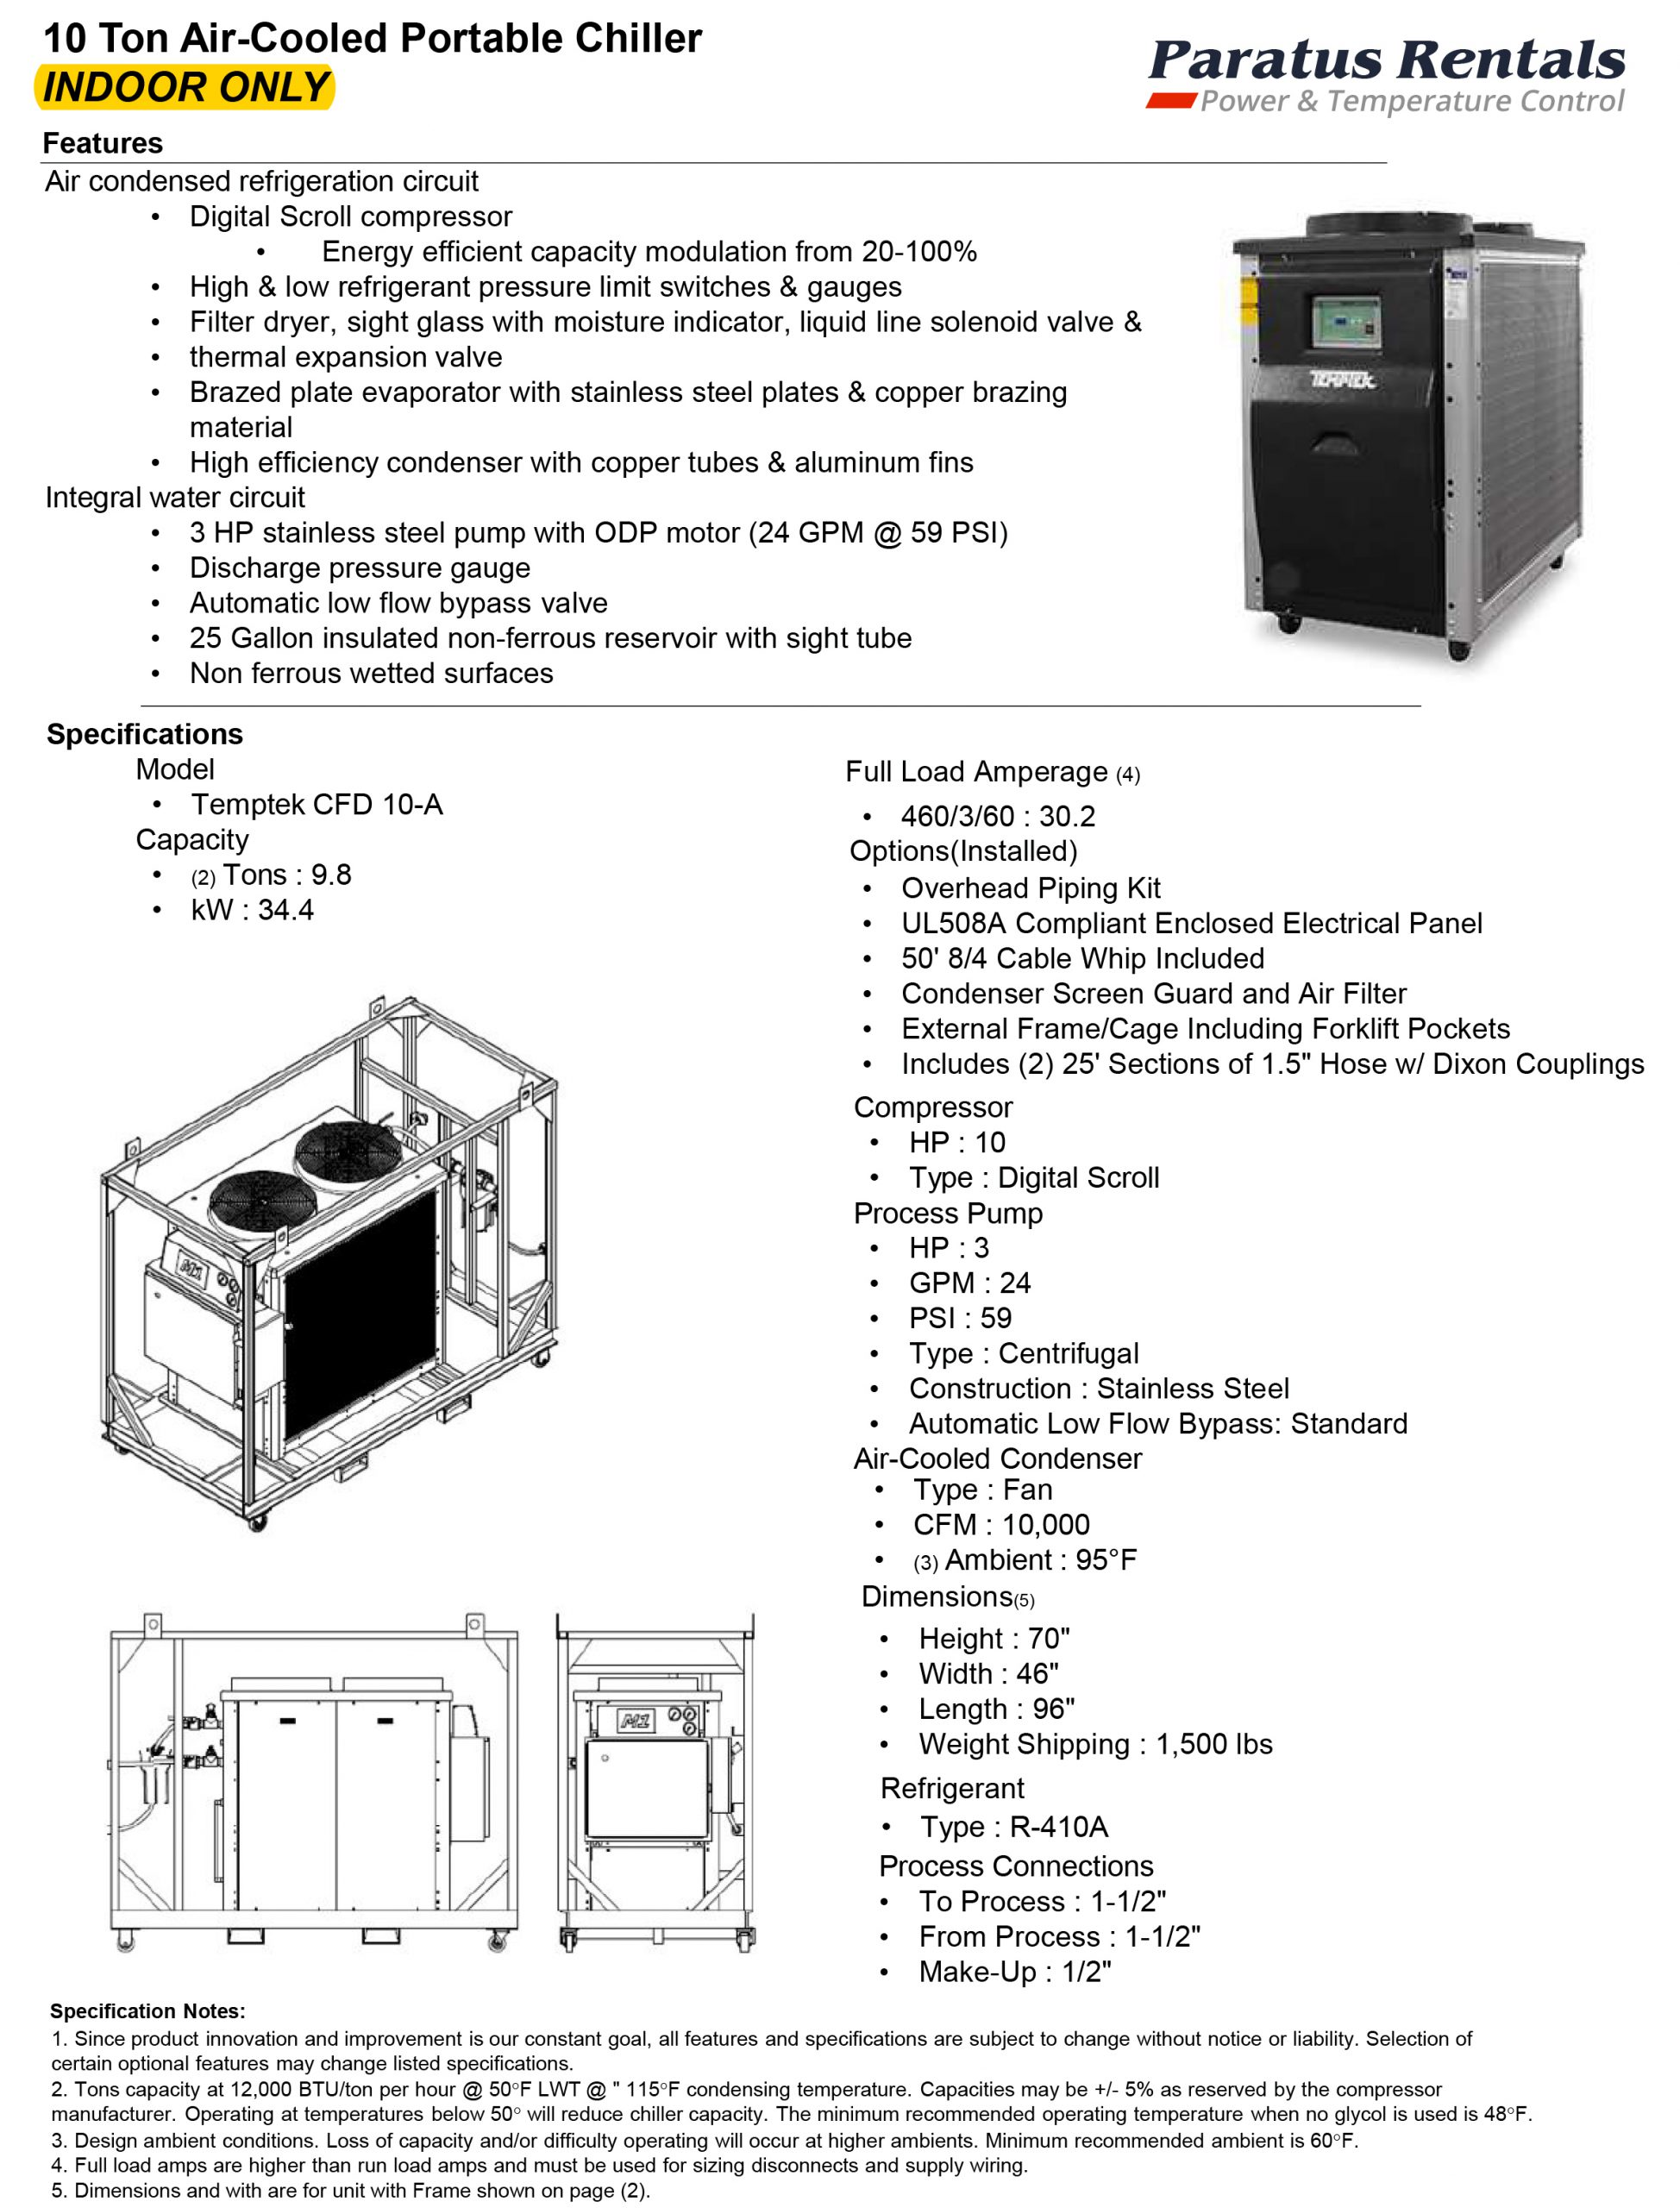 Air Cooled Chiller Rental NY , Air Cooled Chiller Rental DE , Air Cooled Chiller Rental MD , Air Cooled Chiller Rental NJ , Air Cooled Chiller Rental CT , Air Cooled Chiller Rental NYC , Air Cooled Chiller Rental PA , Air Cooled Chiller Rental Philly , Air Cooled Chiller Rental Wash DC , Air Cooled Chiller Rental Baltimore